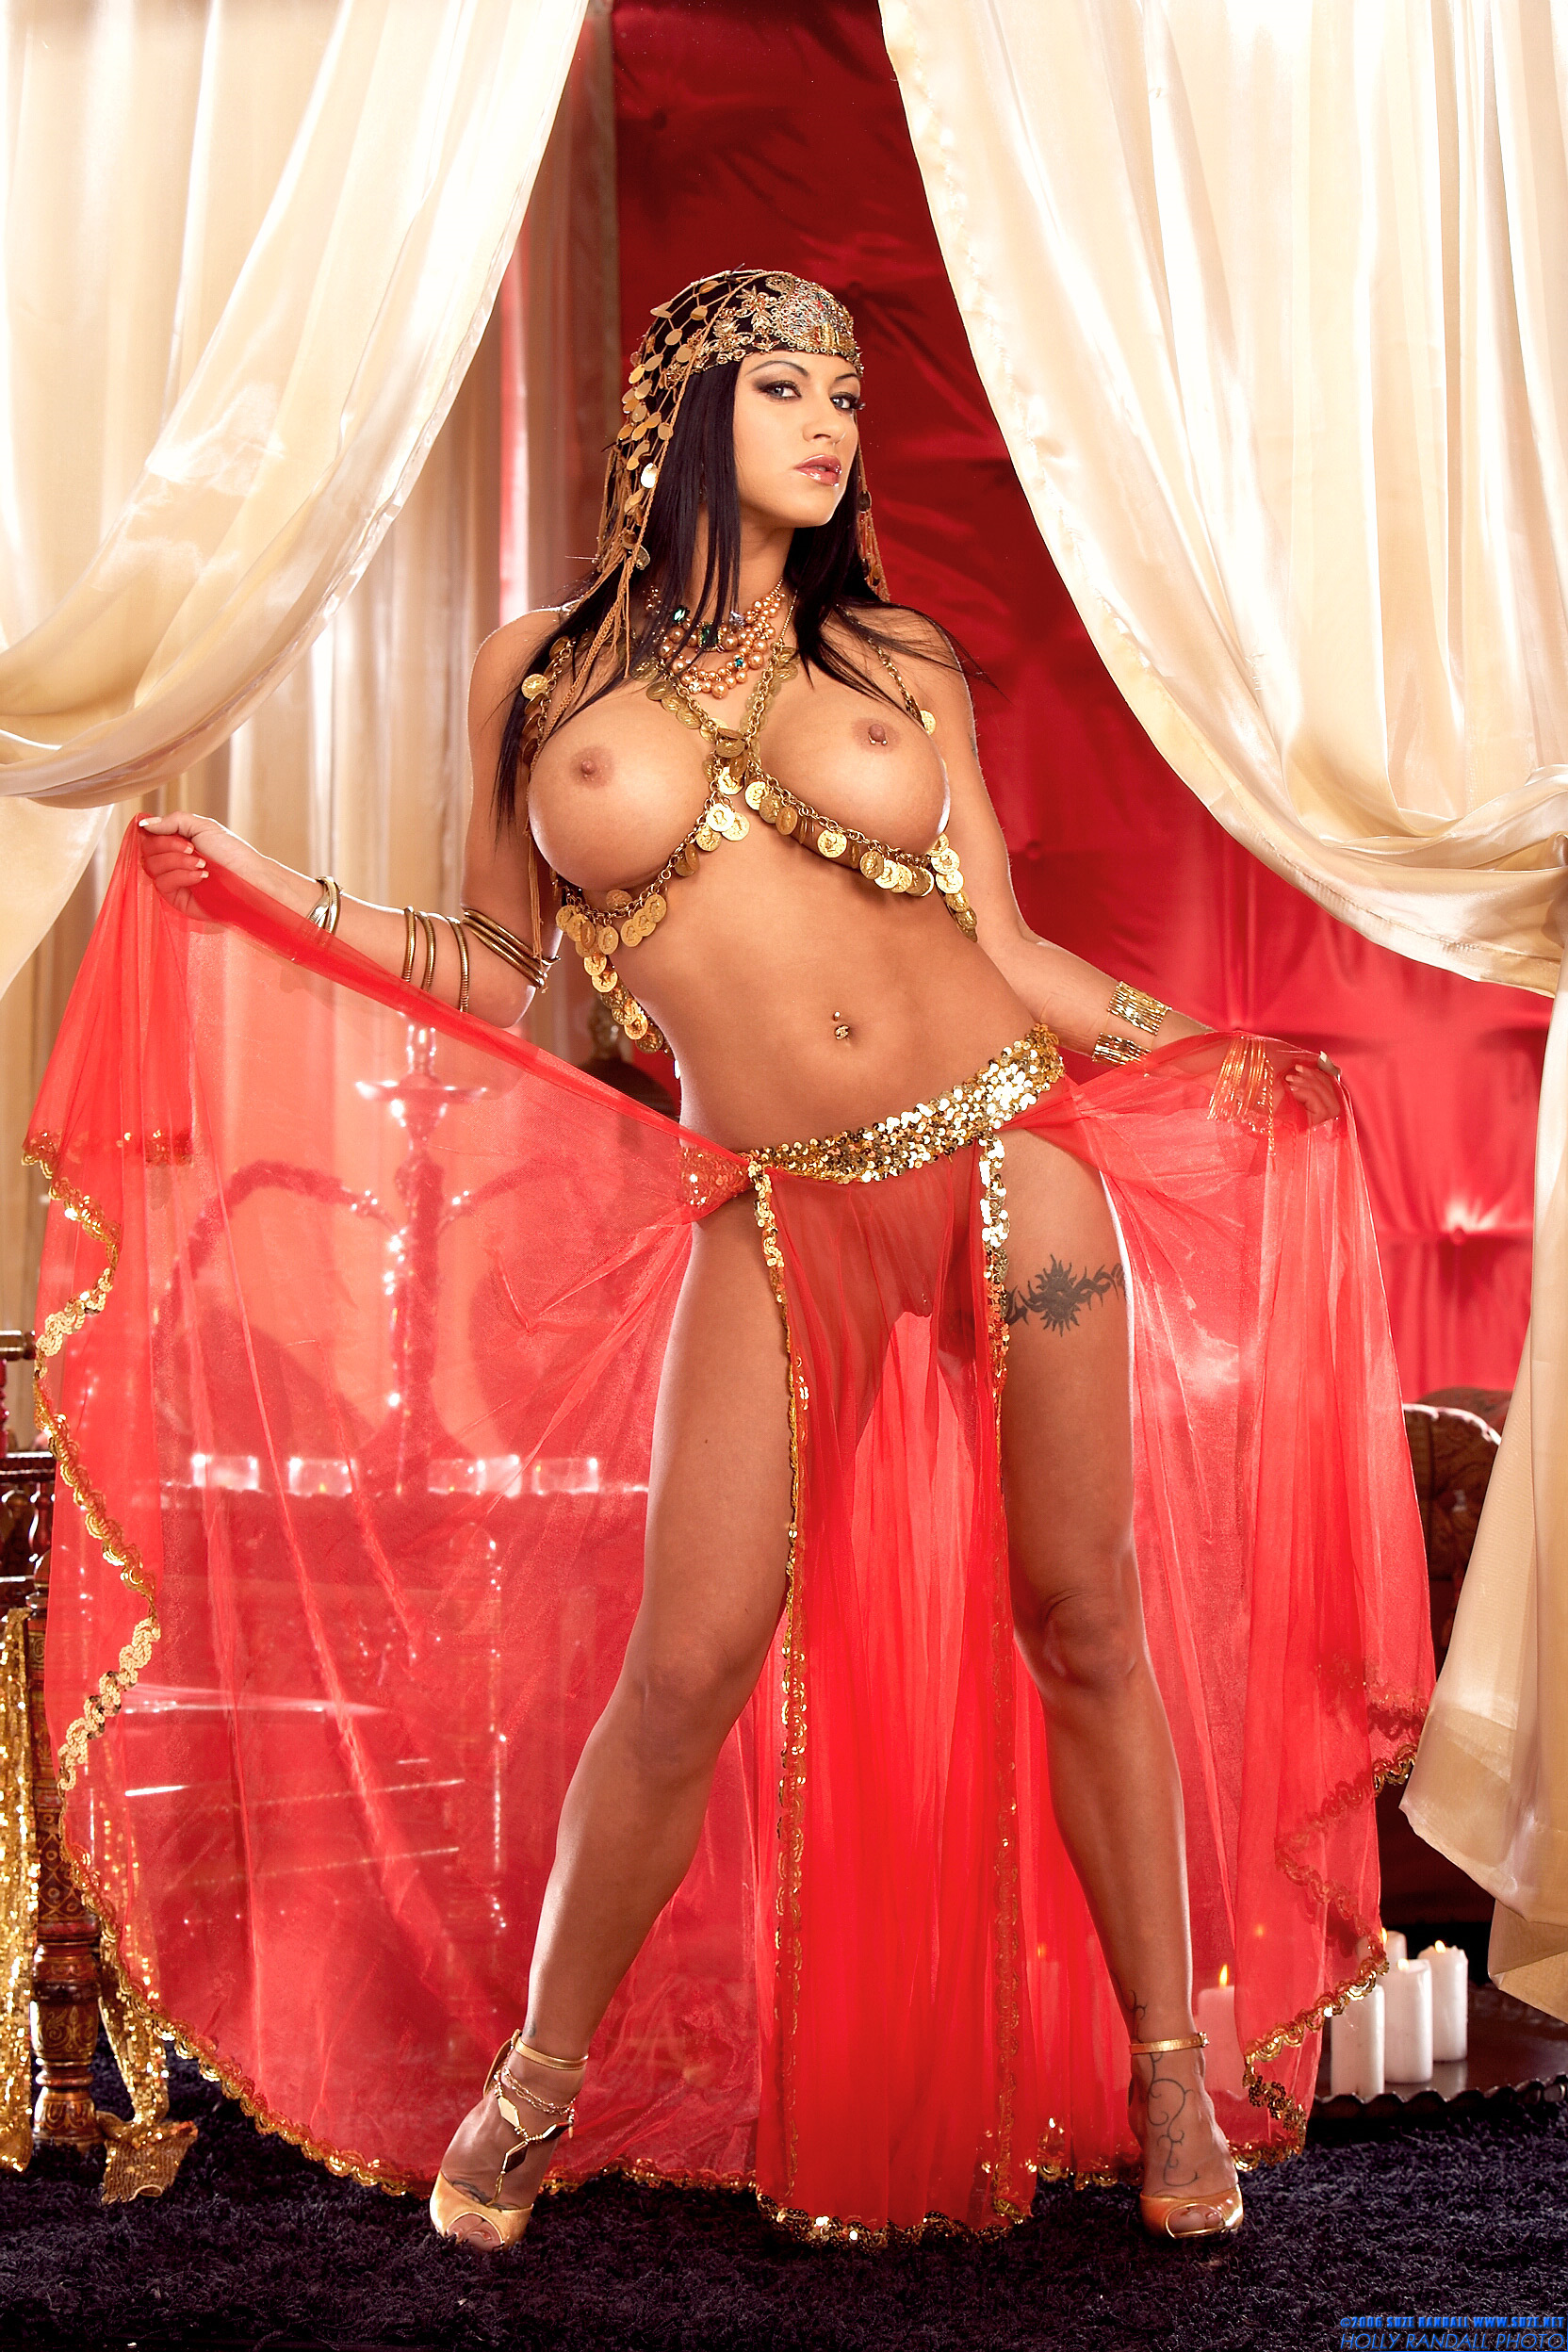 Topless Belly Dance.